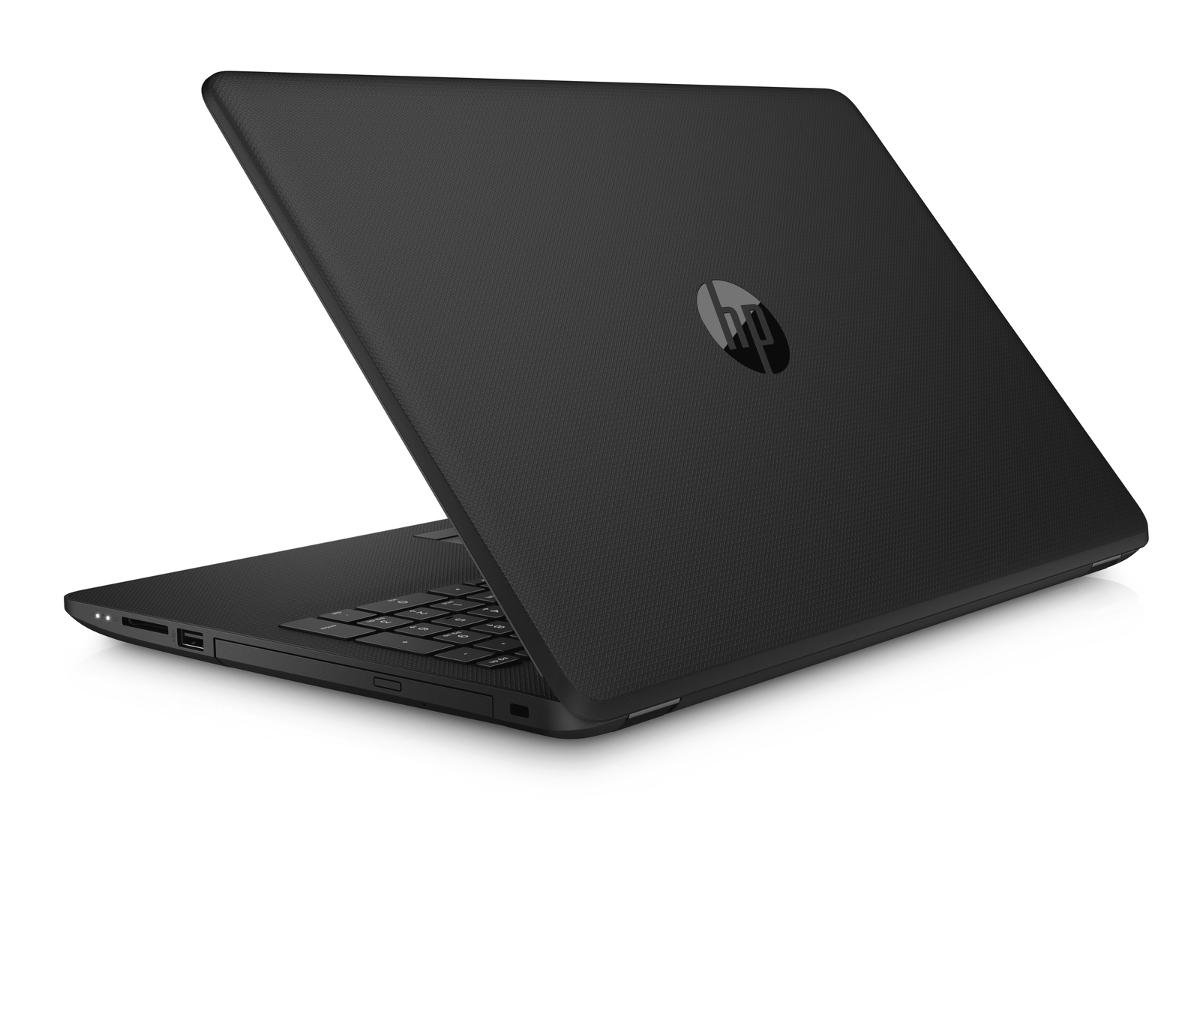 "Laptop HP 15-rb061nw 4UT07EA, A6-9220, 4 GB RAM, 15.6"", 1 TB, Windows 10 Home"